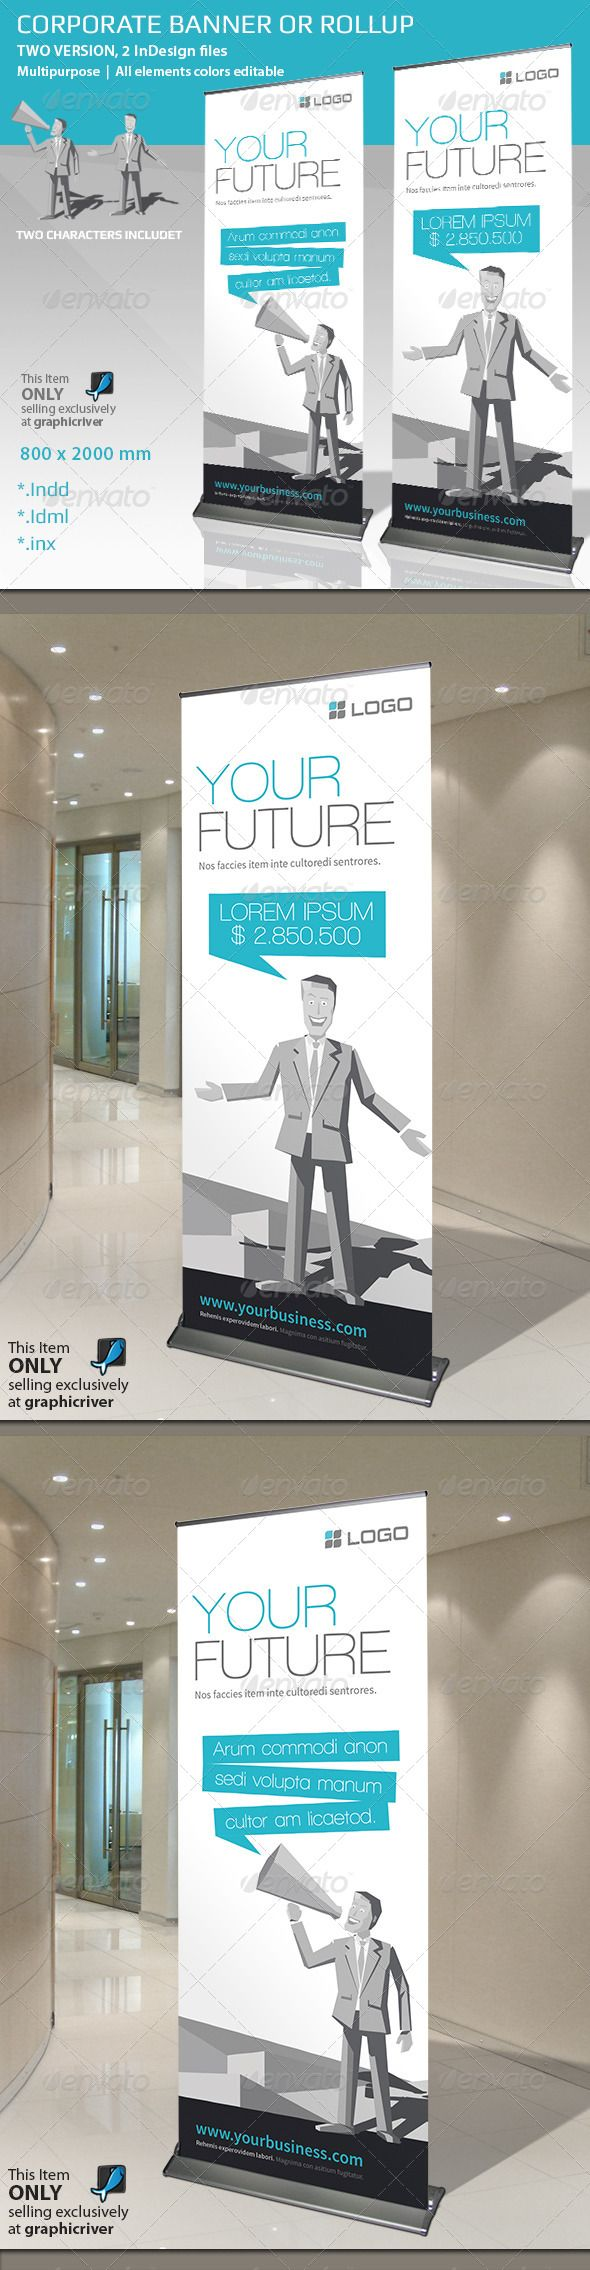 creative Corporate Banner or Roll-up by Paulnomade